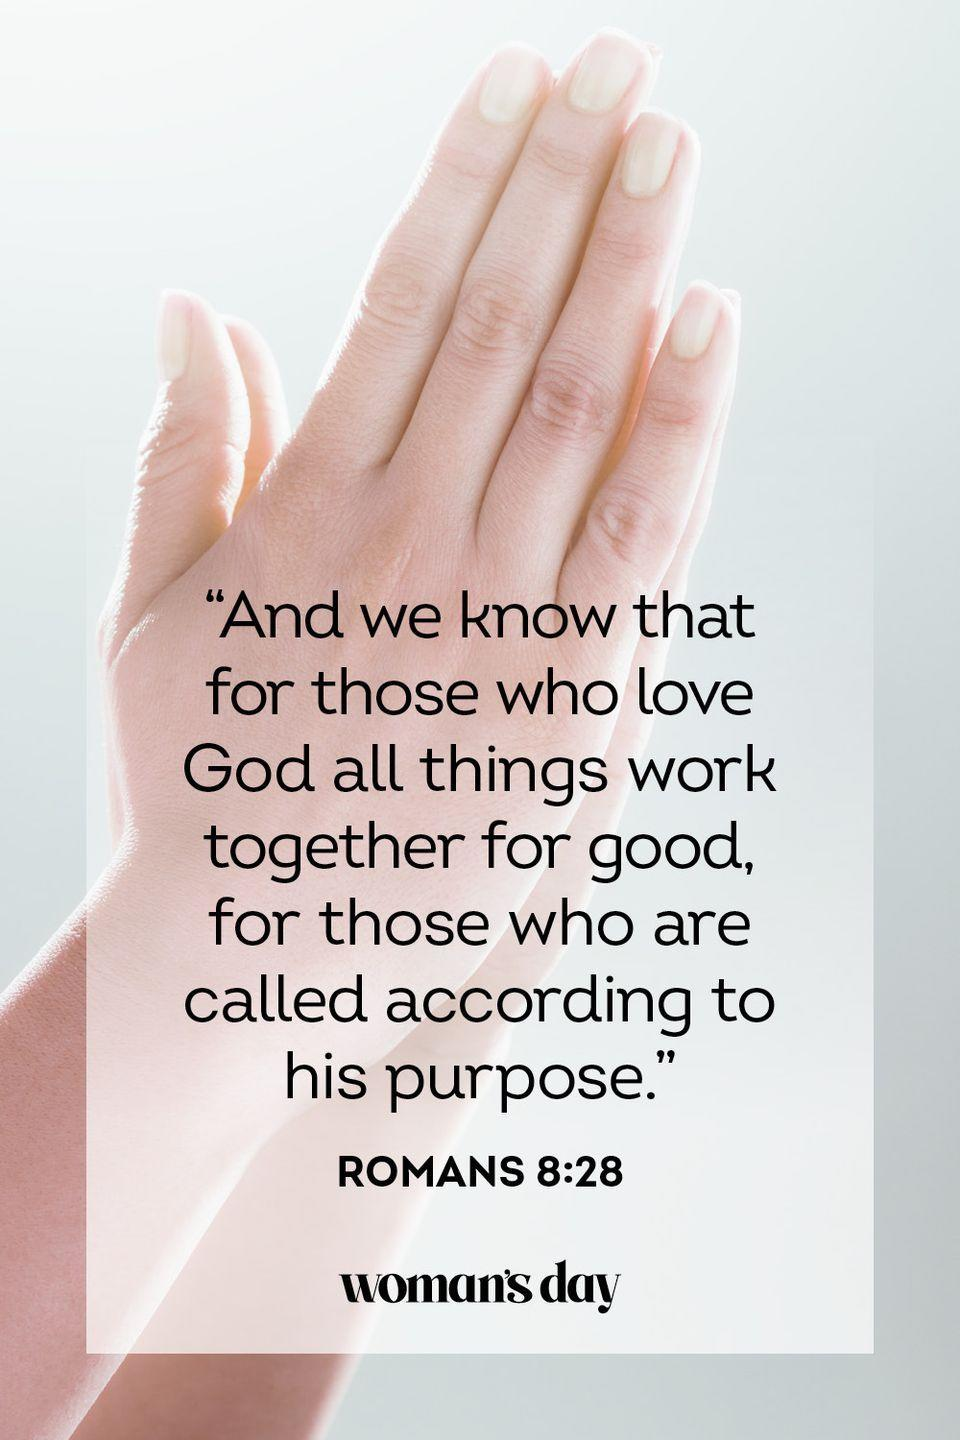 "<p>""And we know that for those who love God all things work together for good, for those who are called according to his purpose.""</p><p><strong>The Good News: </strong>God wills nothing but good for us.</p>"